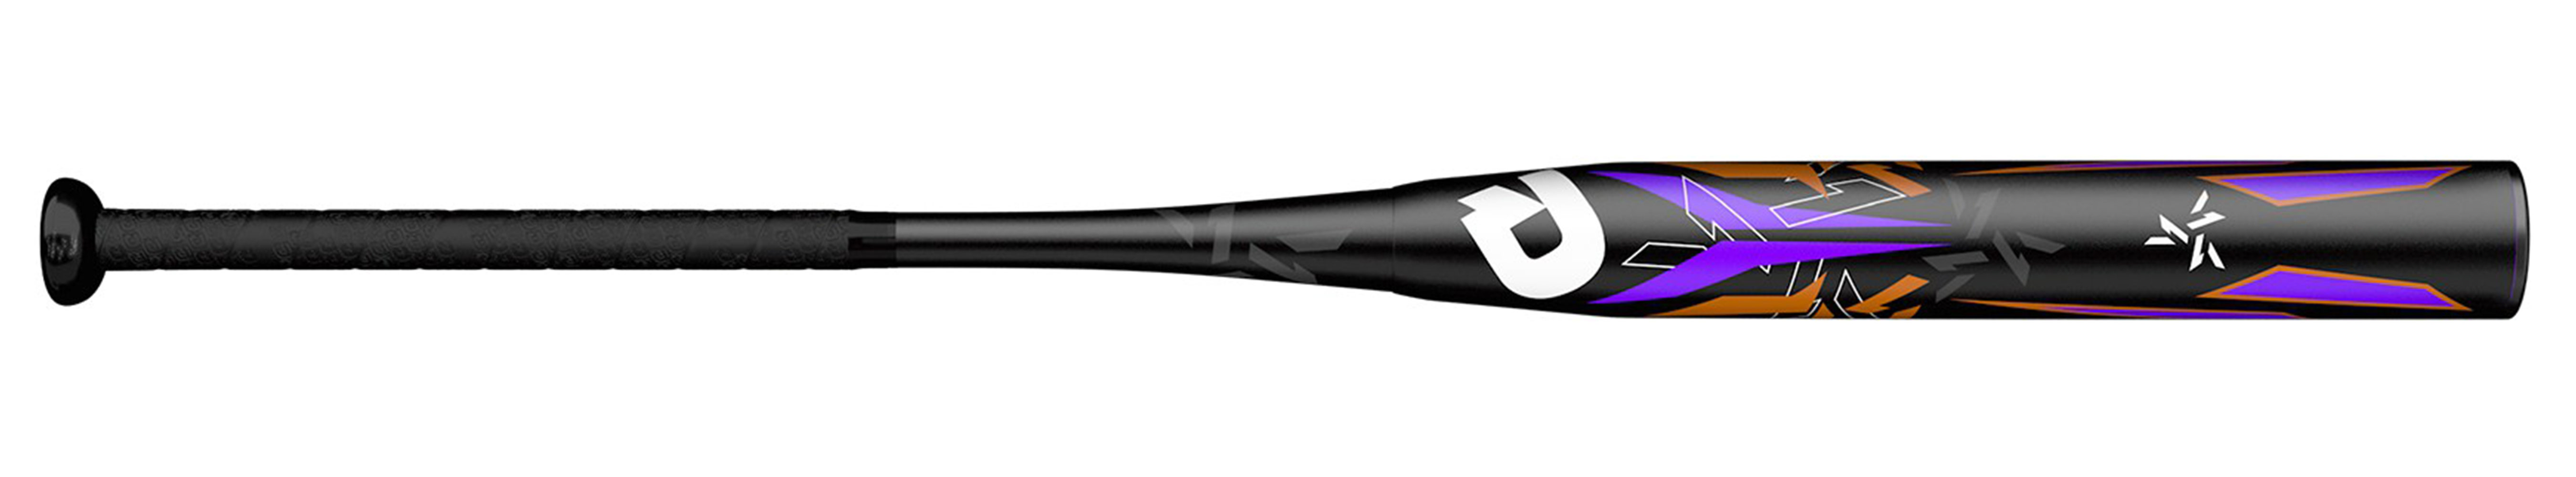 2019 DeMarini Twisted Mistress Slo-Pitch Bat